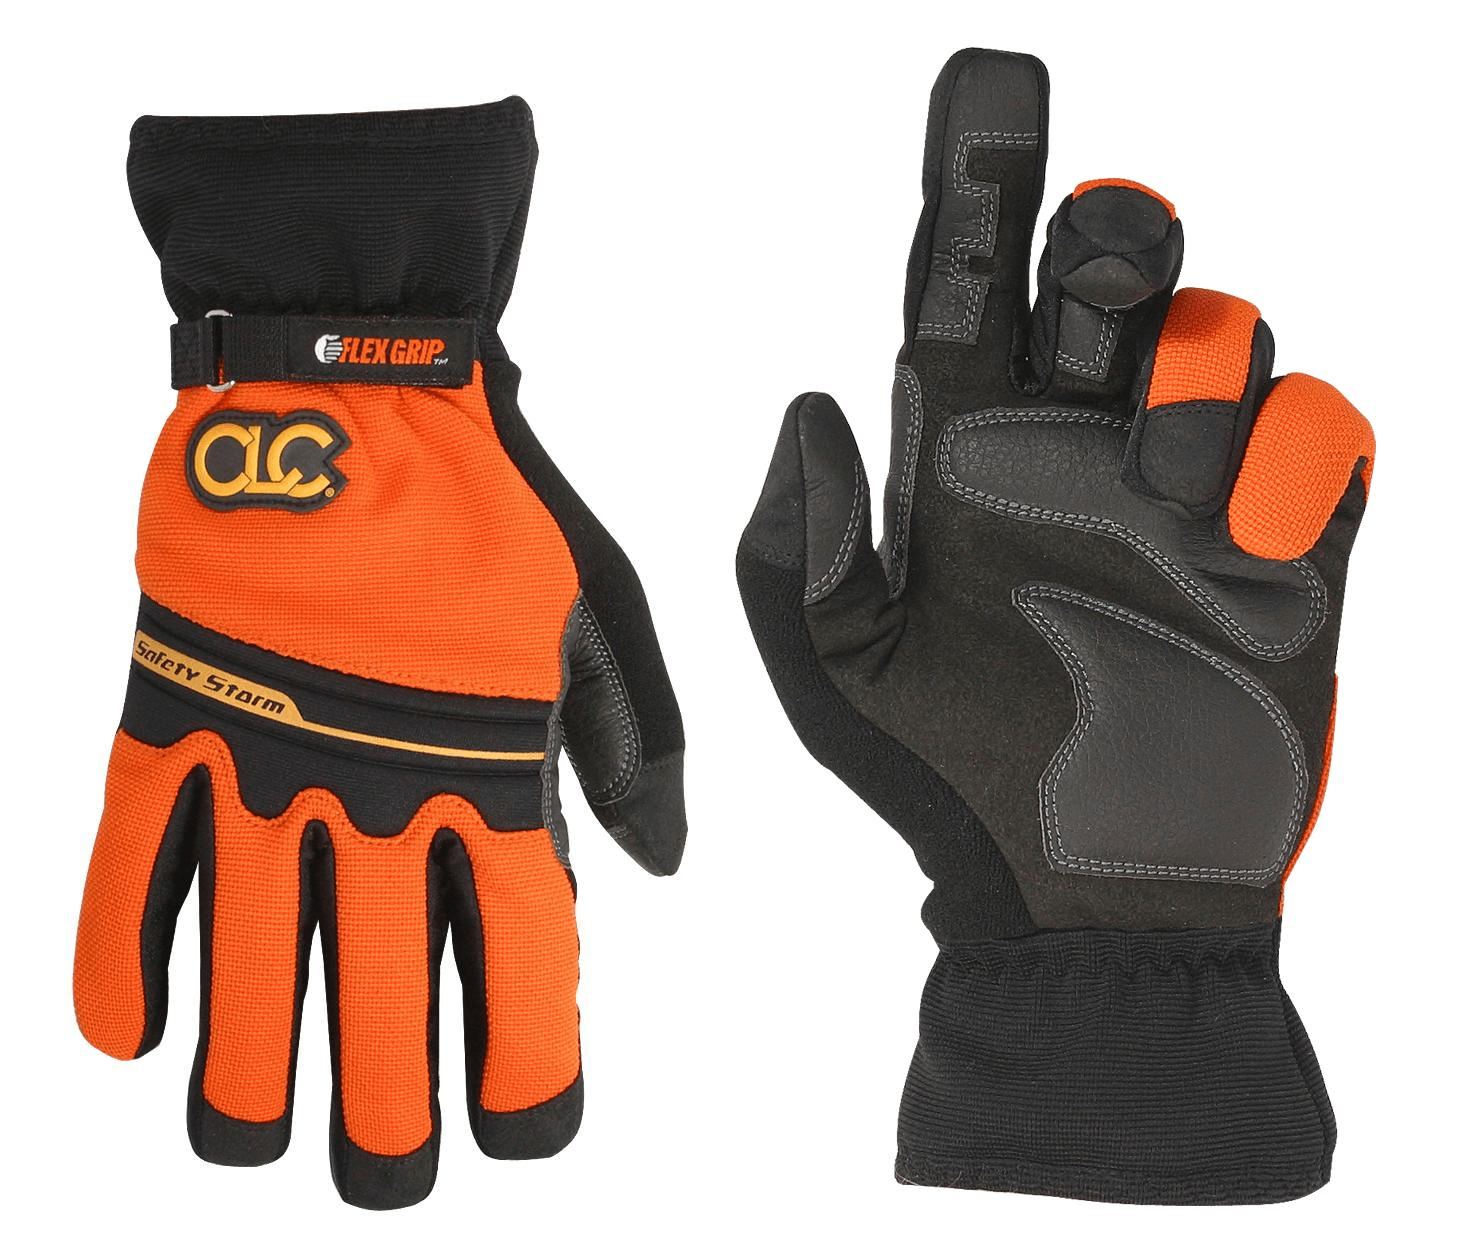 Safety gloves option